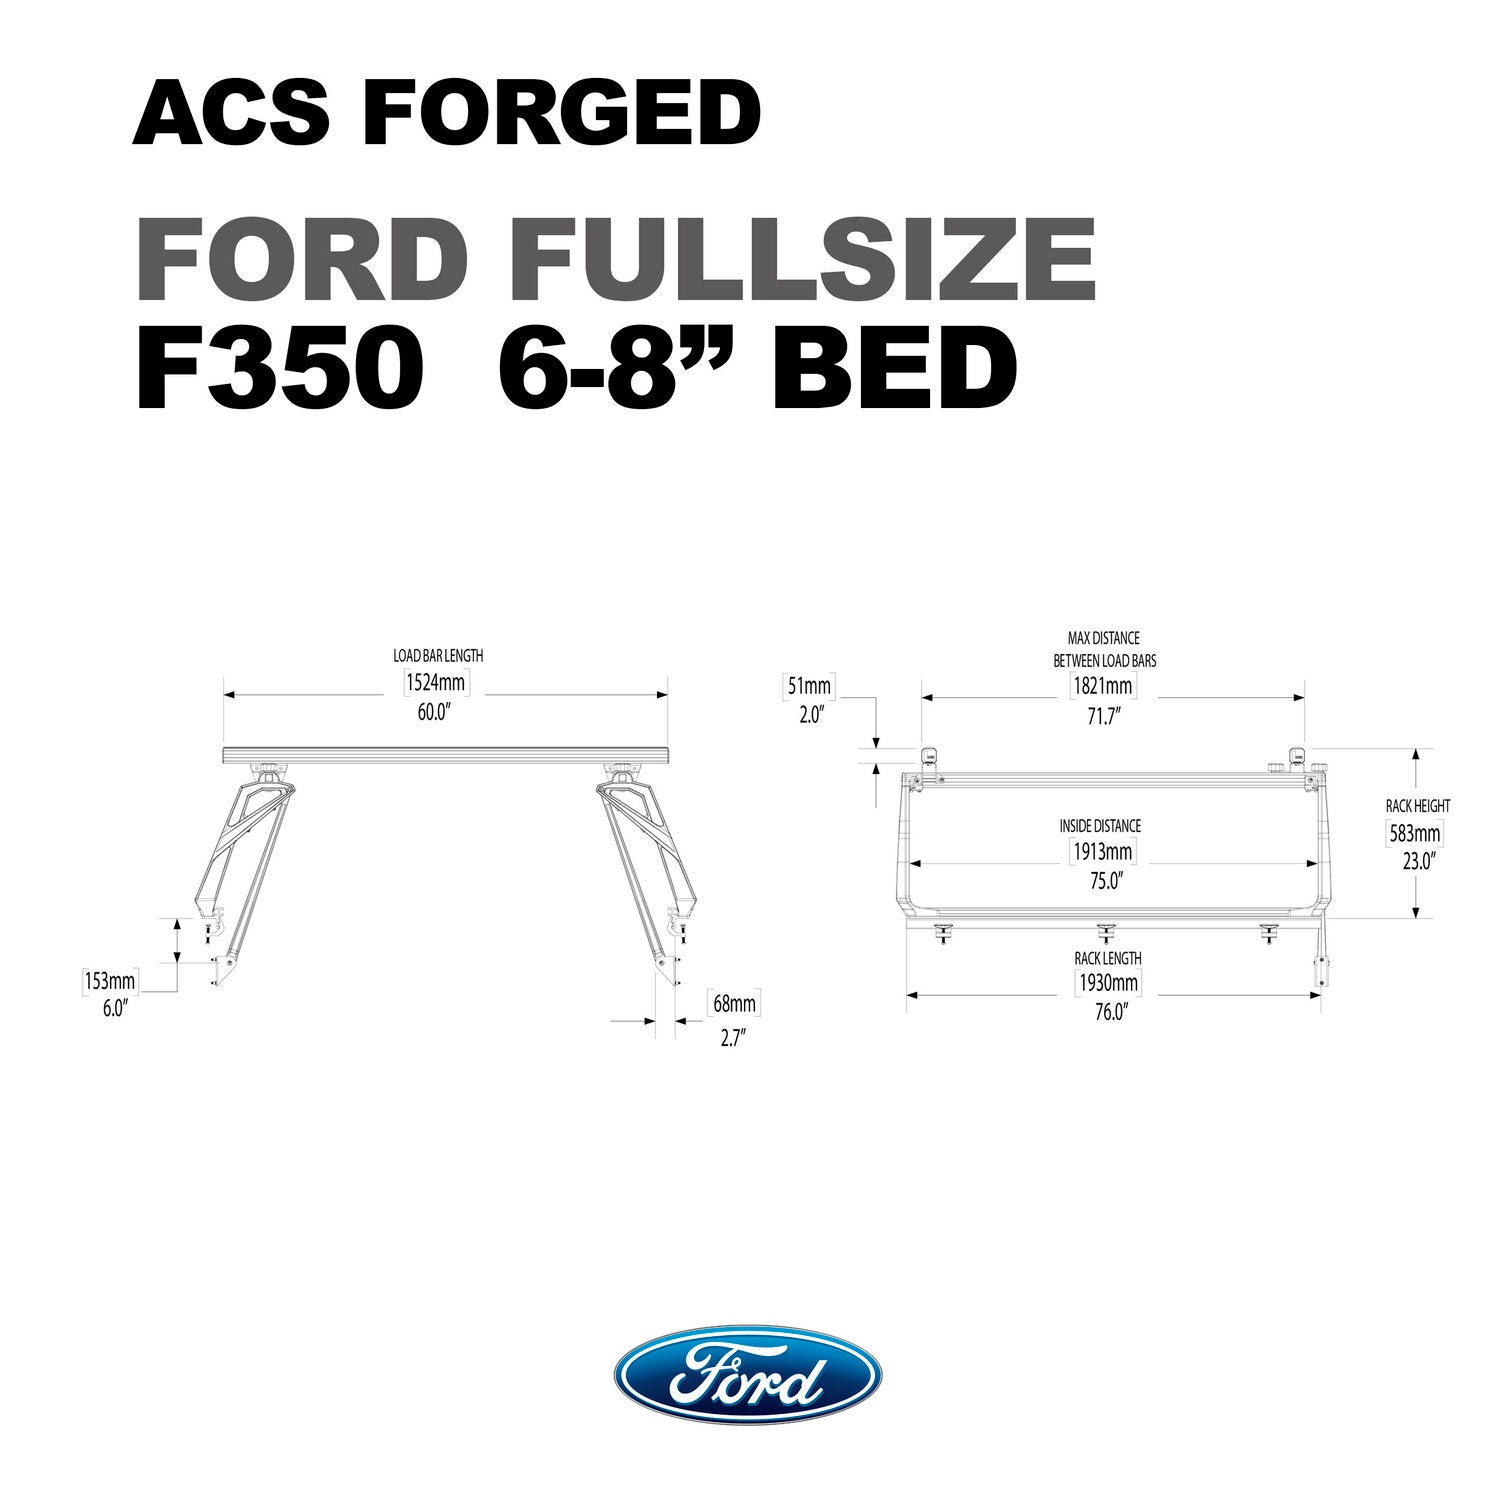 Active Cargo System - FORGED - Ford